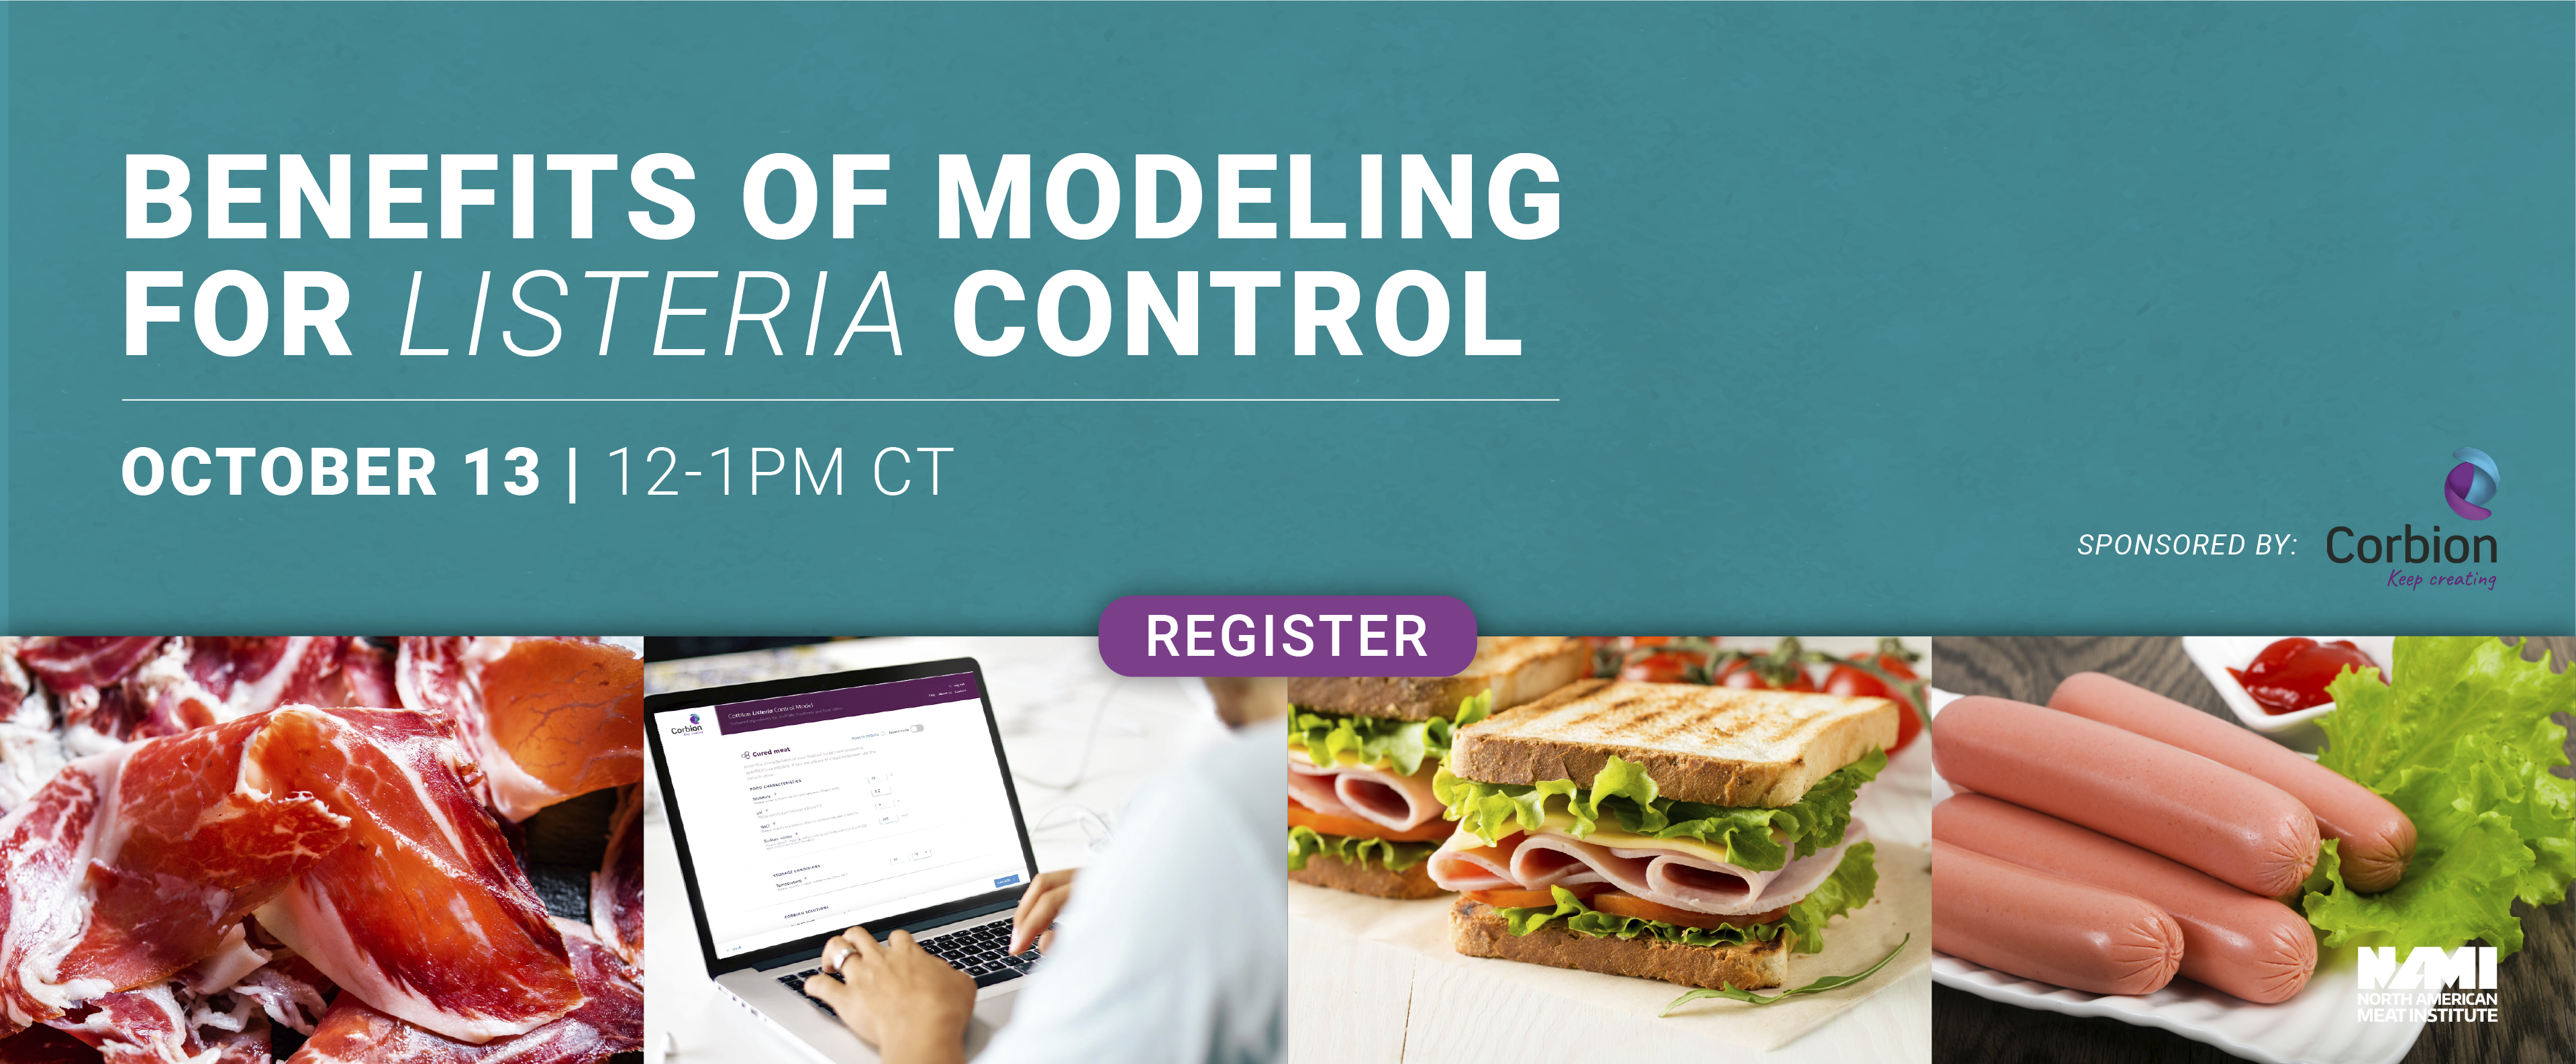 Benefits of modeling for Listeria control